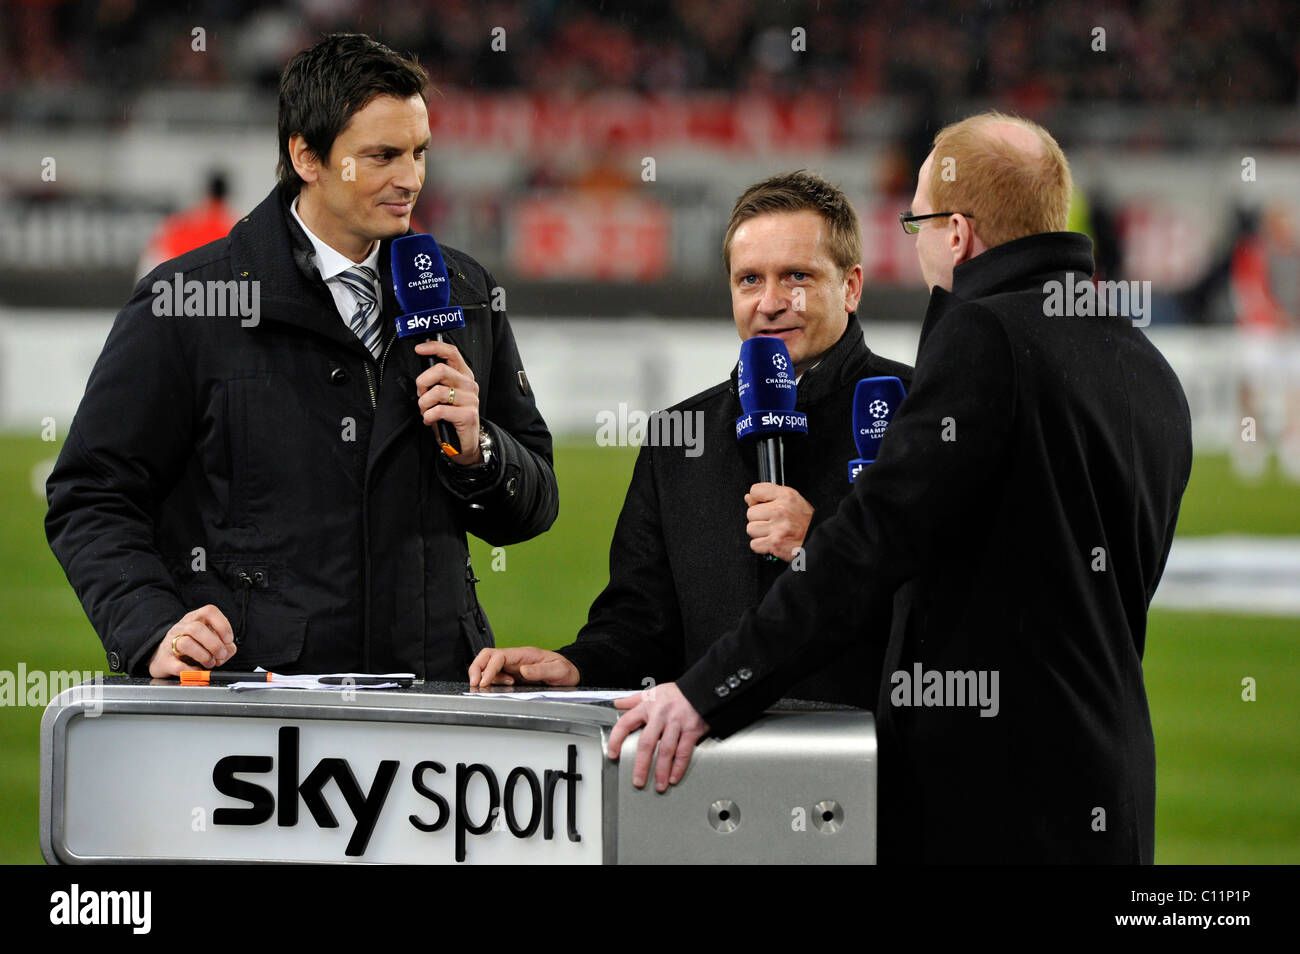 Interviews on SKY SPORTS Desk with DFB sports director Matthias Sammer on the right, sports director Horst Heldt - Stock Image